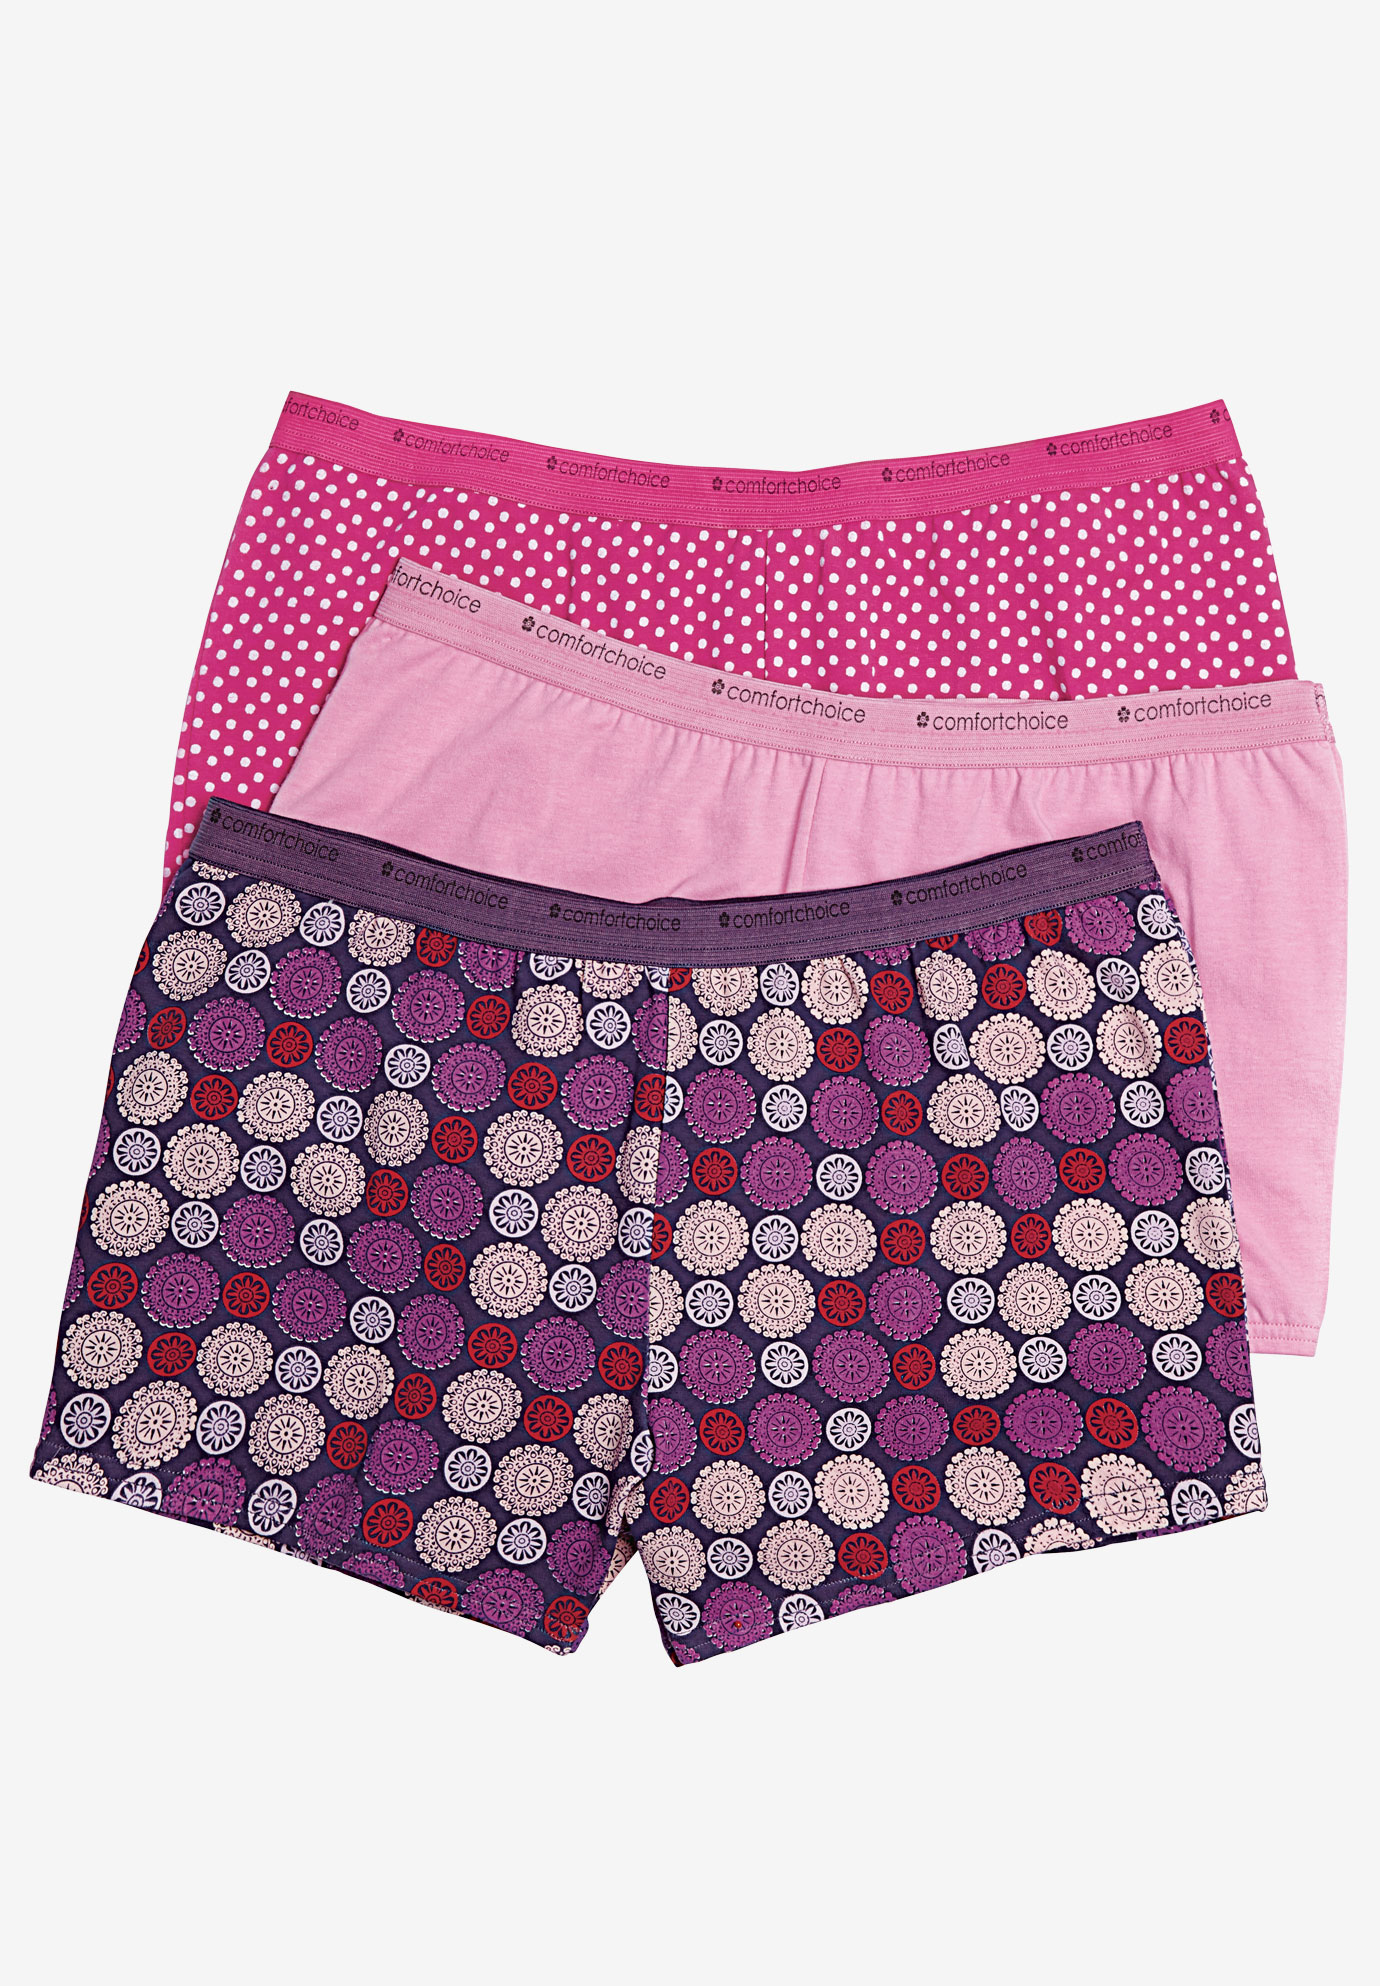 3-Pack Boyshort by Comfort Choice®, BERRY MEDALLION PACK, hi-res